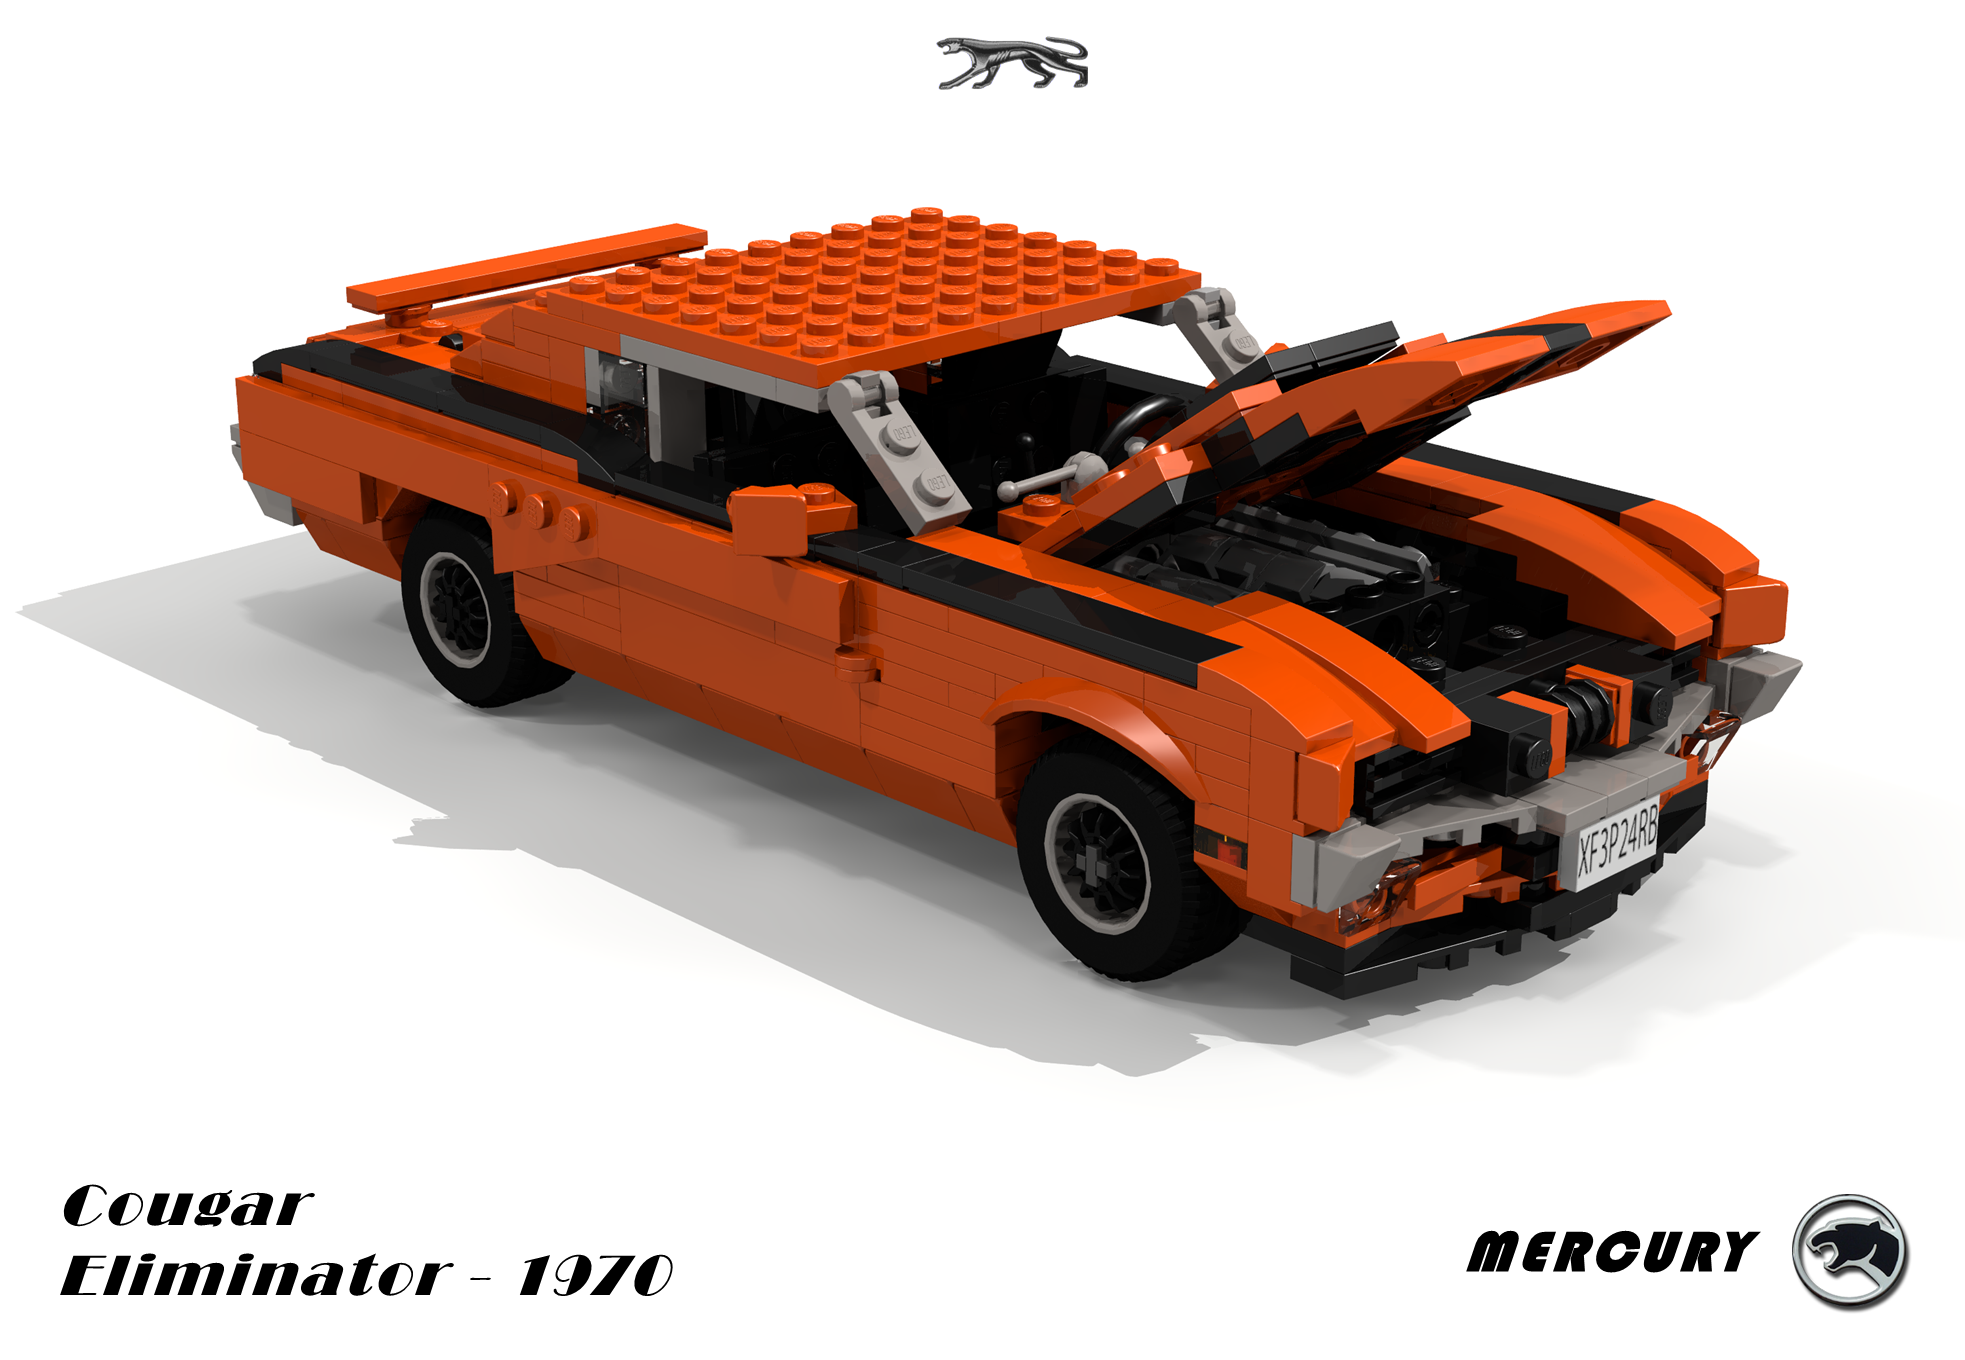 mercury_cougar_1970_eliminator_11.png